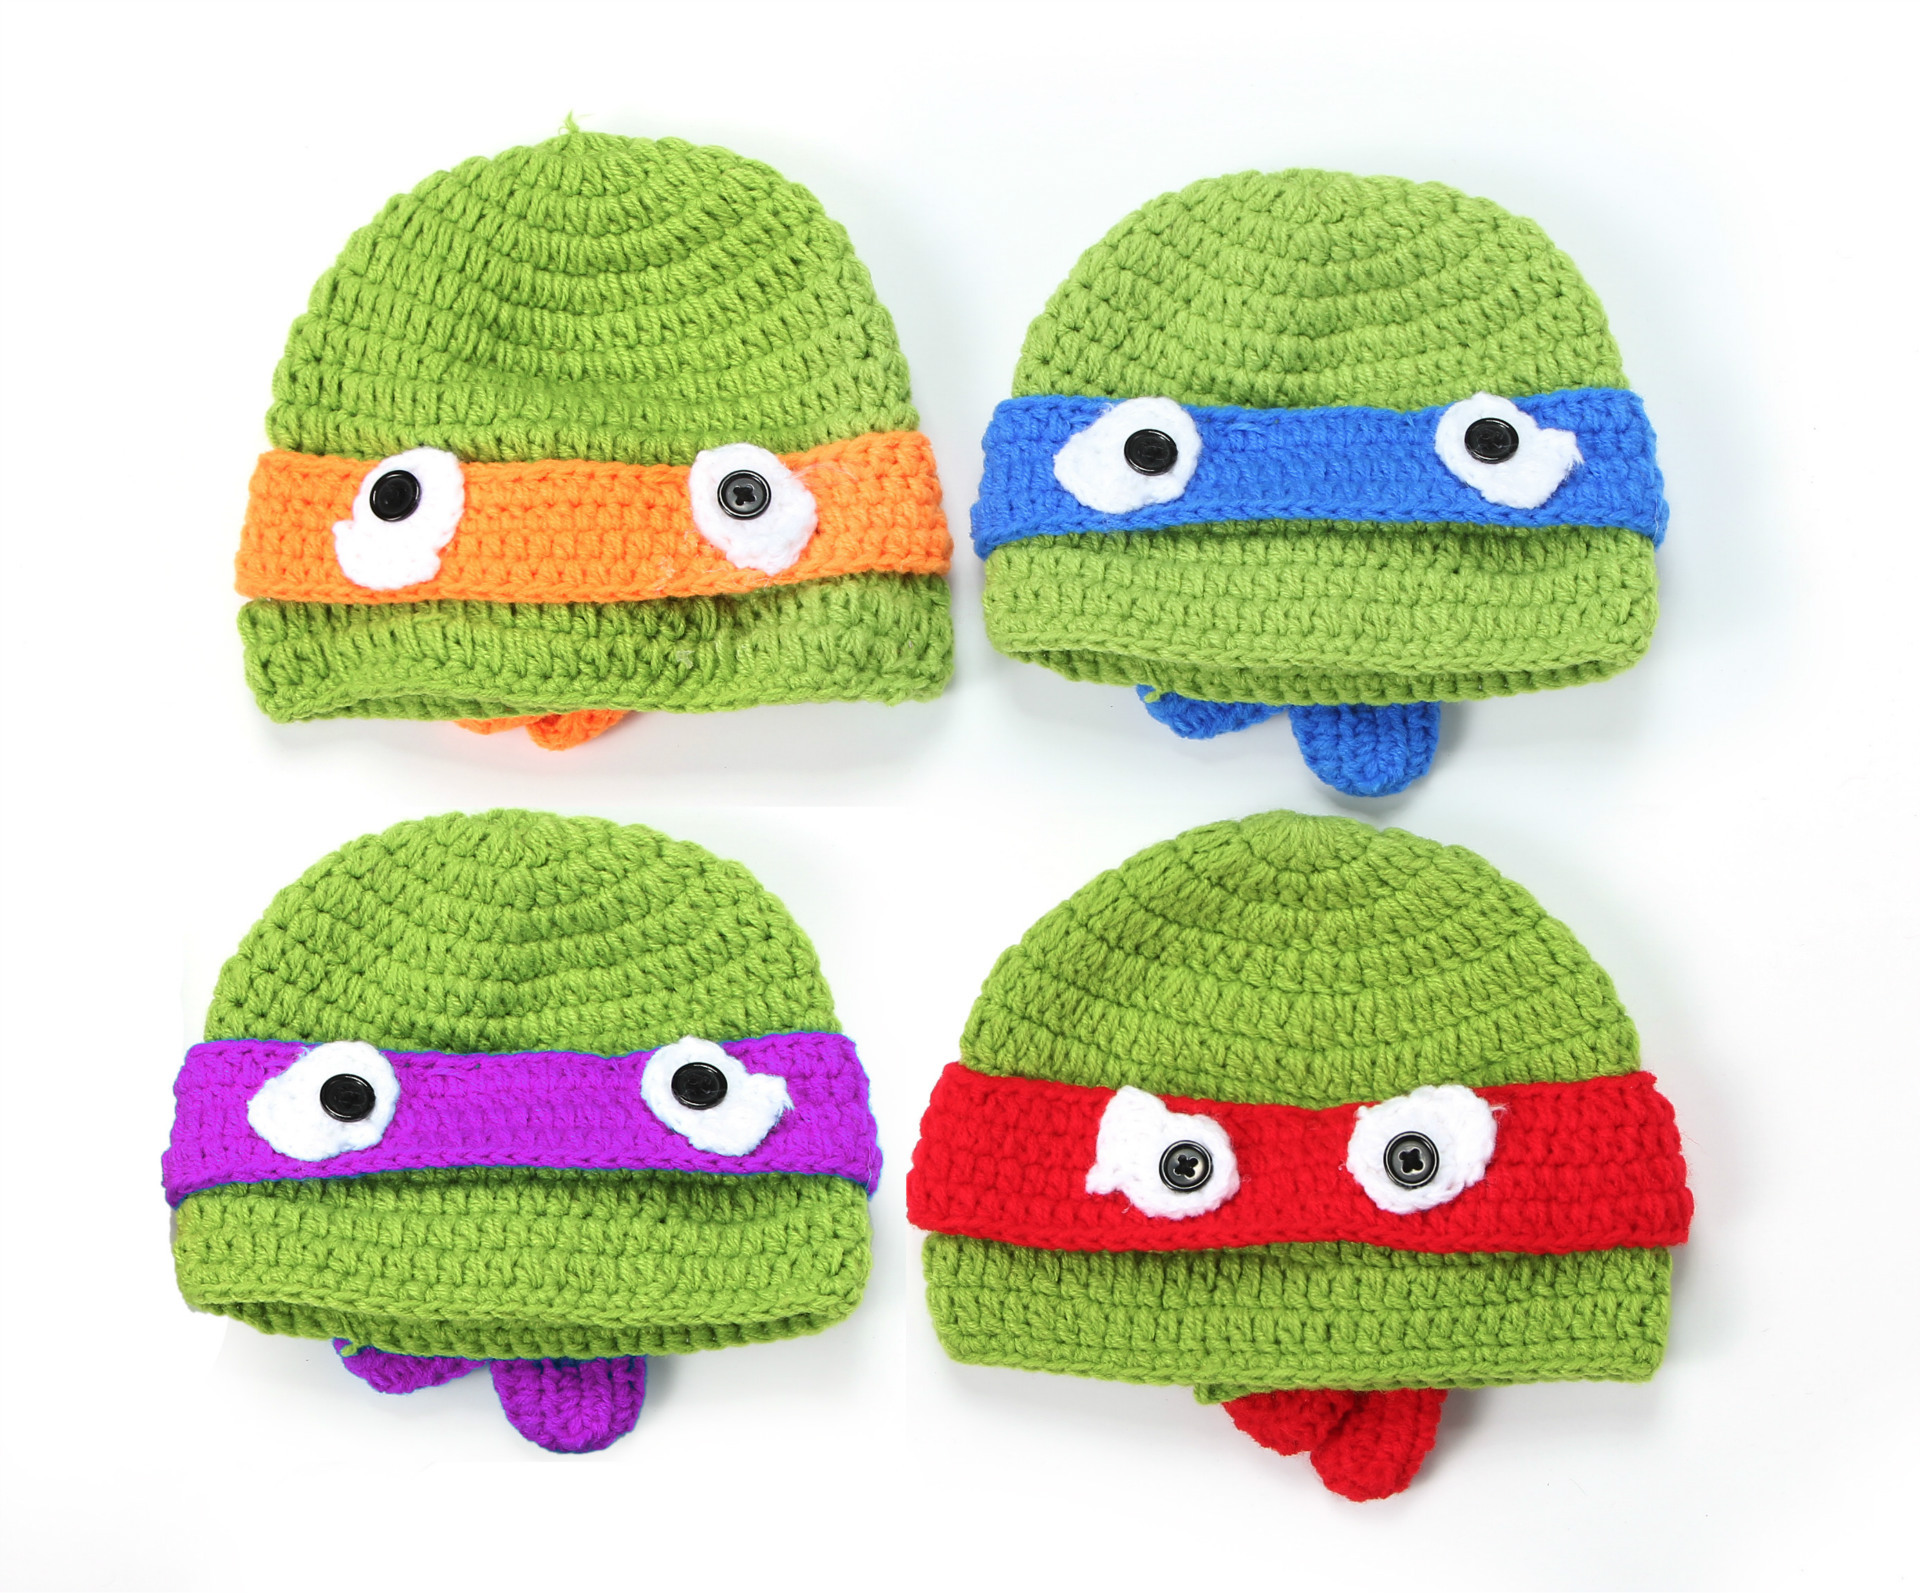 Buy Hand Woven Baby Hat Cartoon Boy Hat Child Knitted Hats Baby Accessories  Baby Photo Props Crochet Patterns Free Cap Children in Cheap Price on  Alibaba. ... 195506d9530